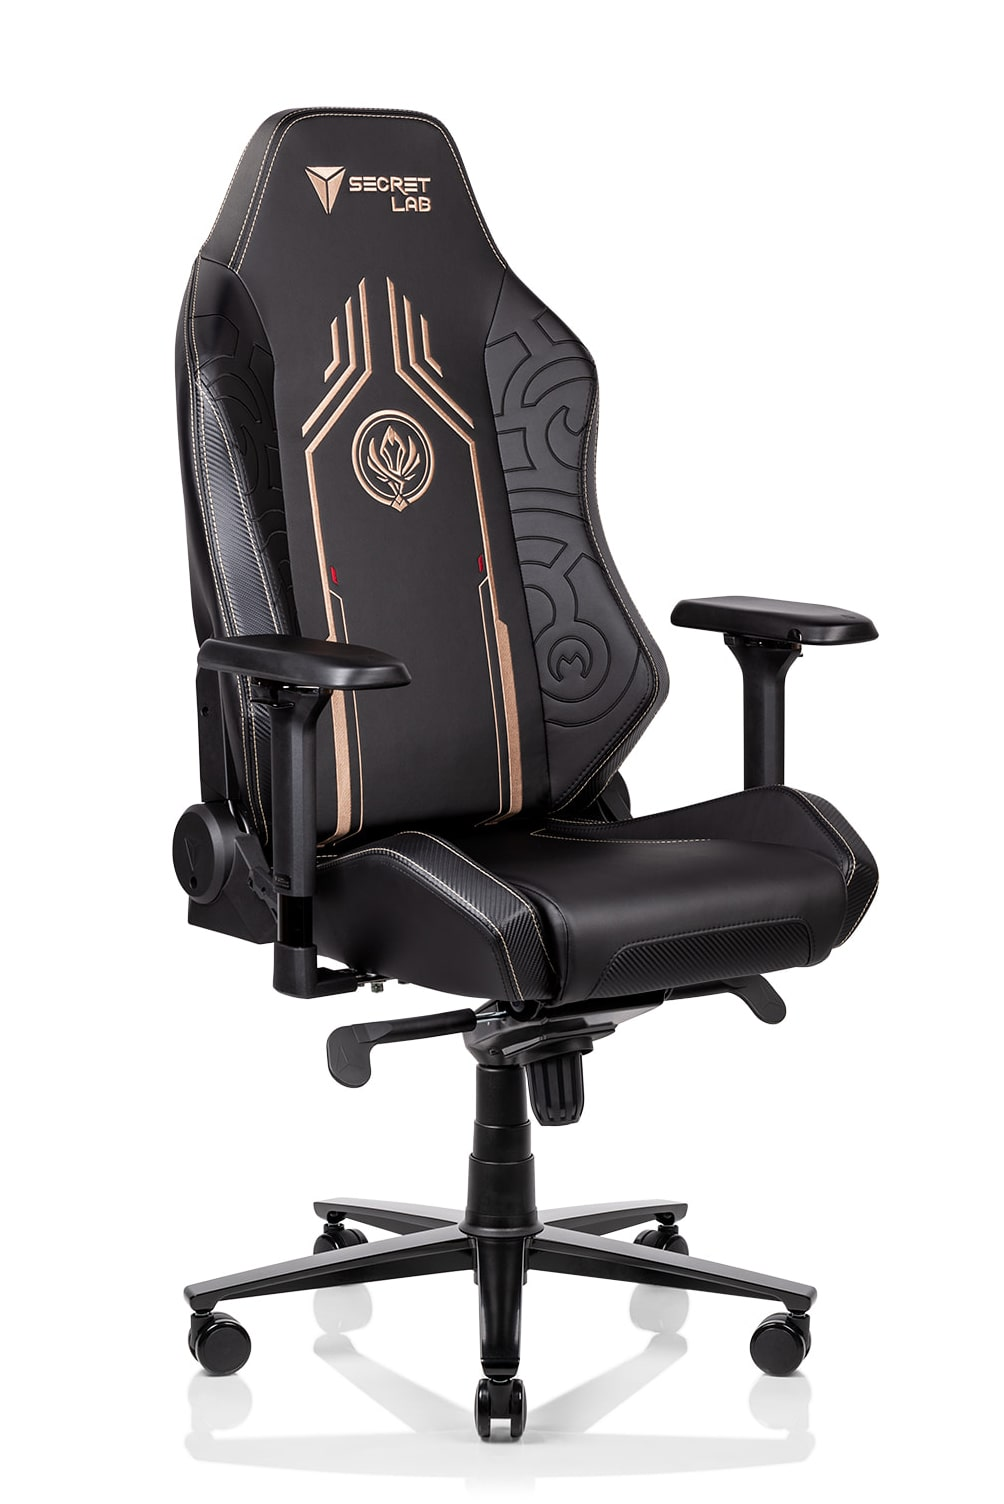 Secretlab OMEGA Series - MSI Special Edition Gaming Chair